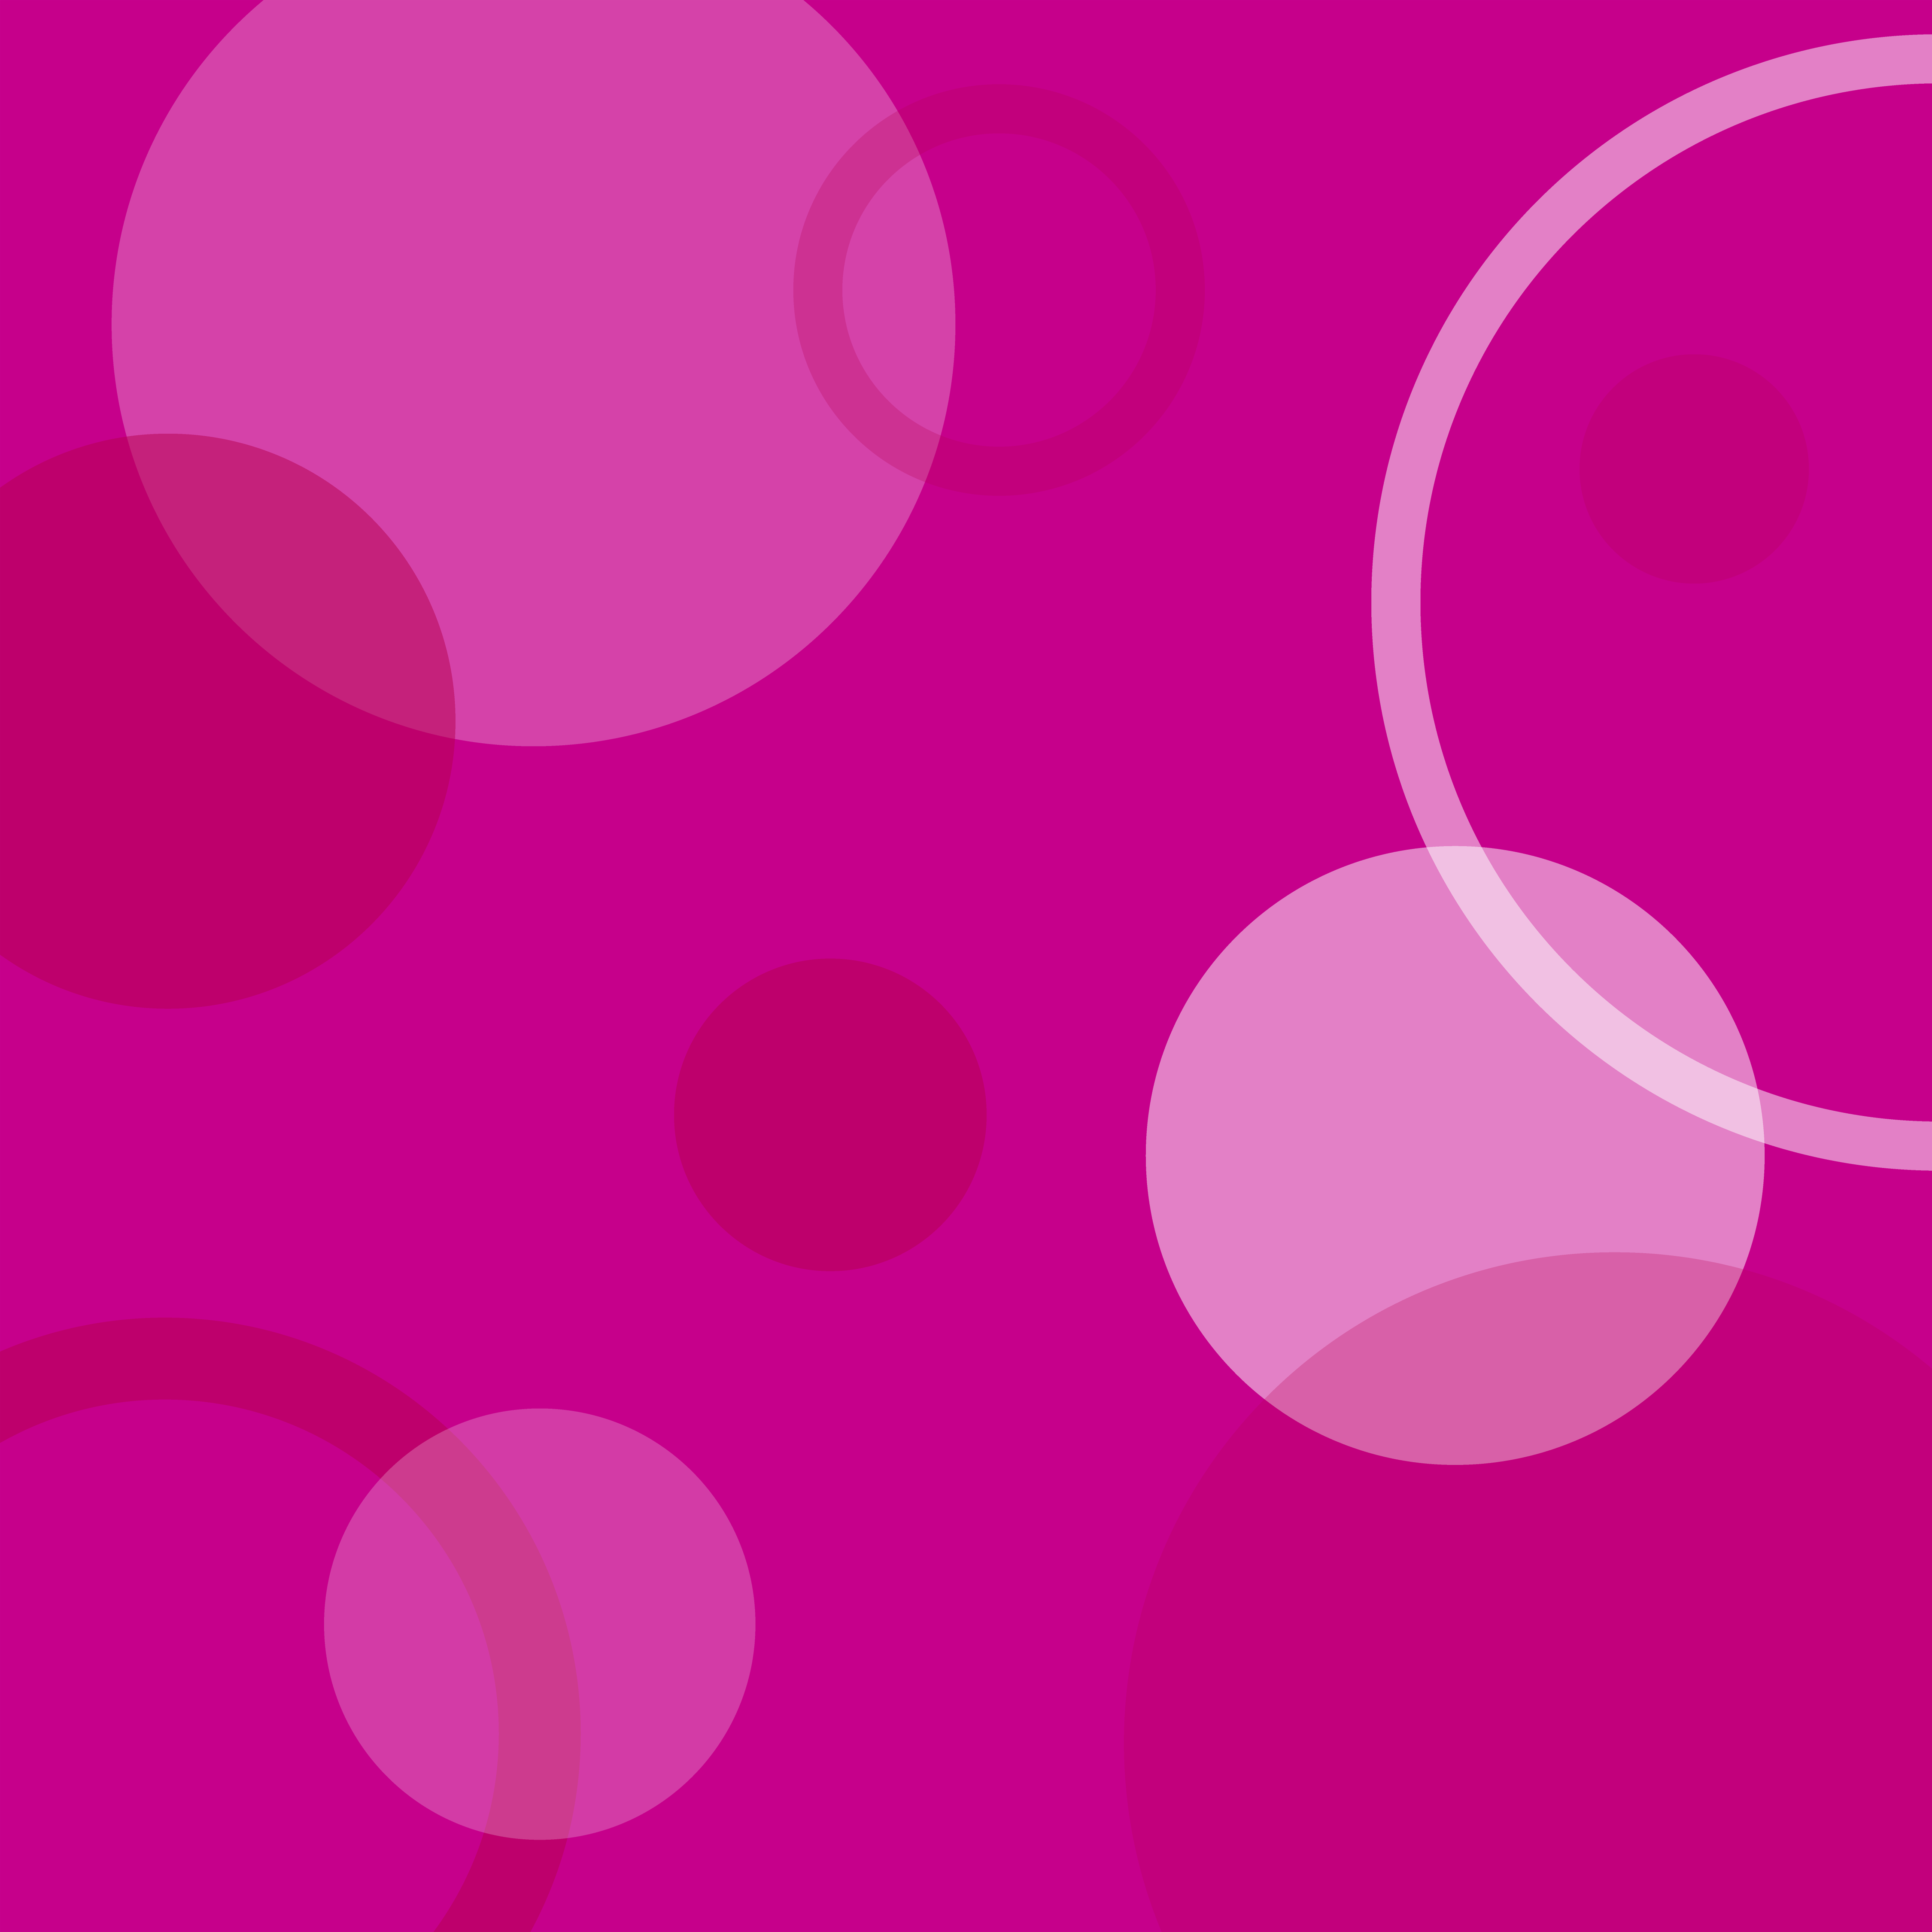 Pink background clipart #5